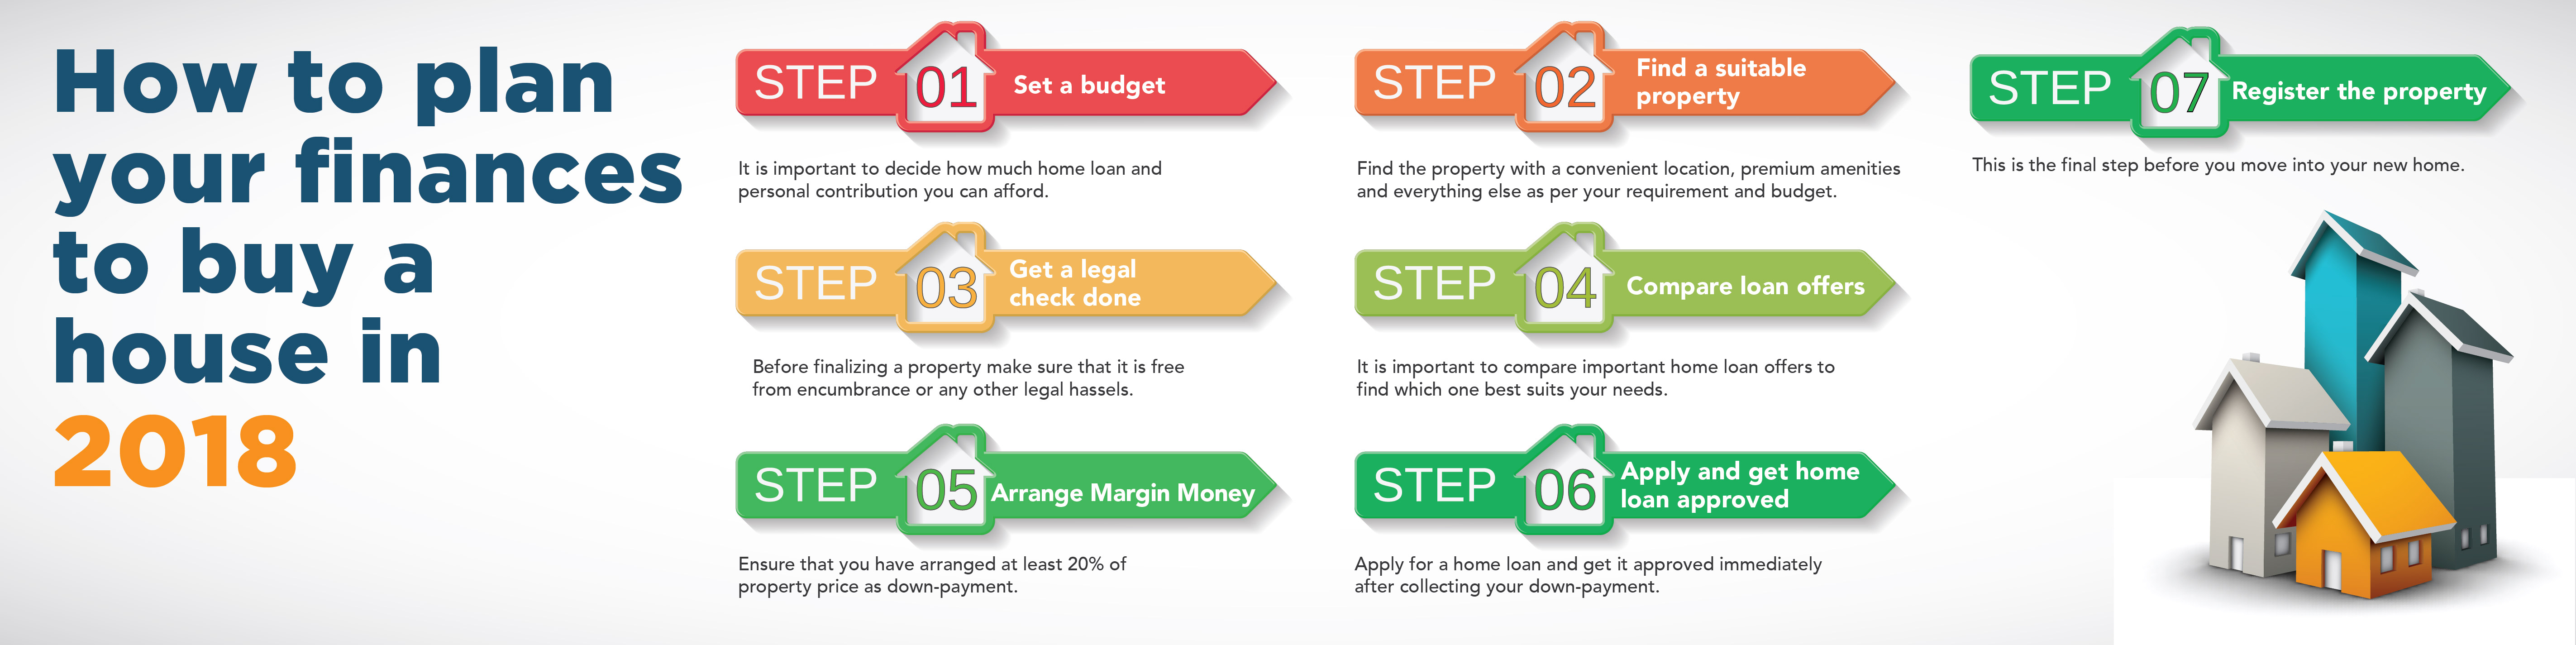 How to plan your finances to buy a house